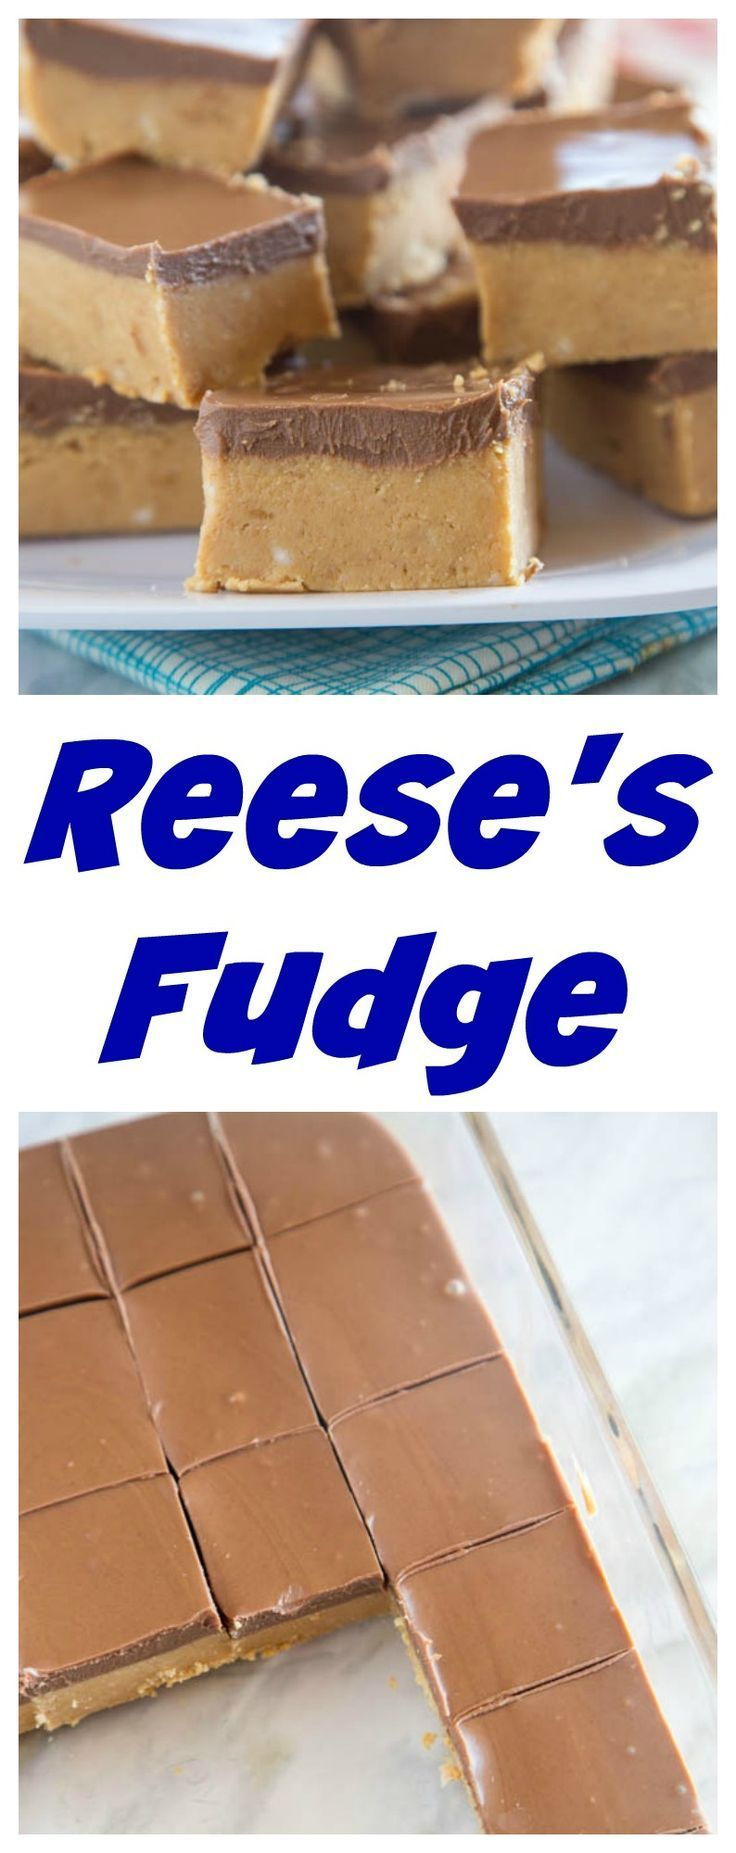 Reese's Fudge – a layer of creamy peanut butter fudge topped with melted chocolate and peanut butter. And easy no bake recipe that is down right addicting!